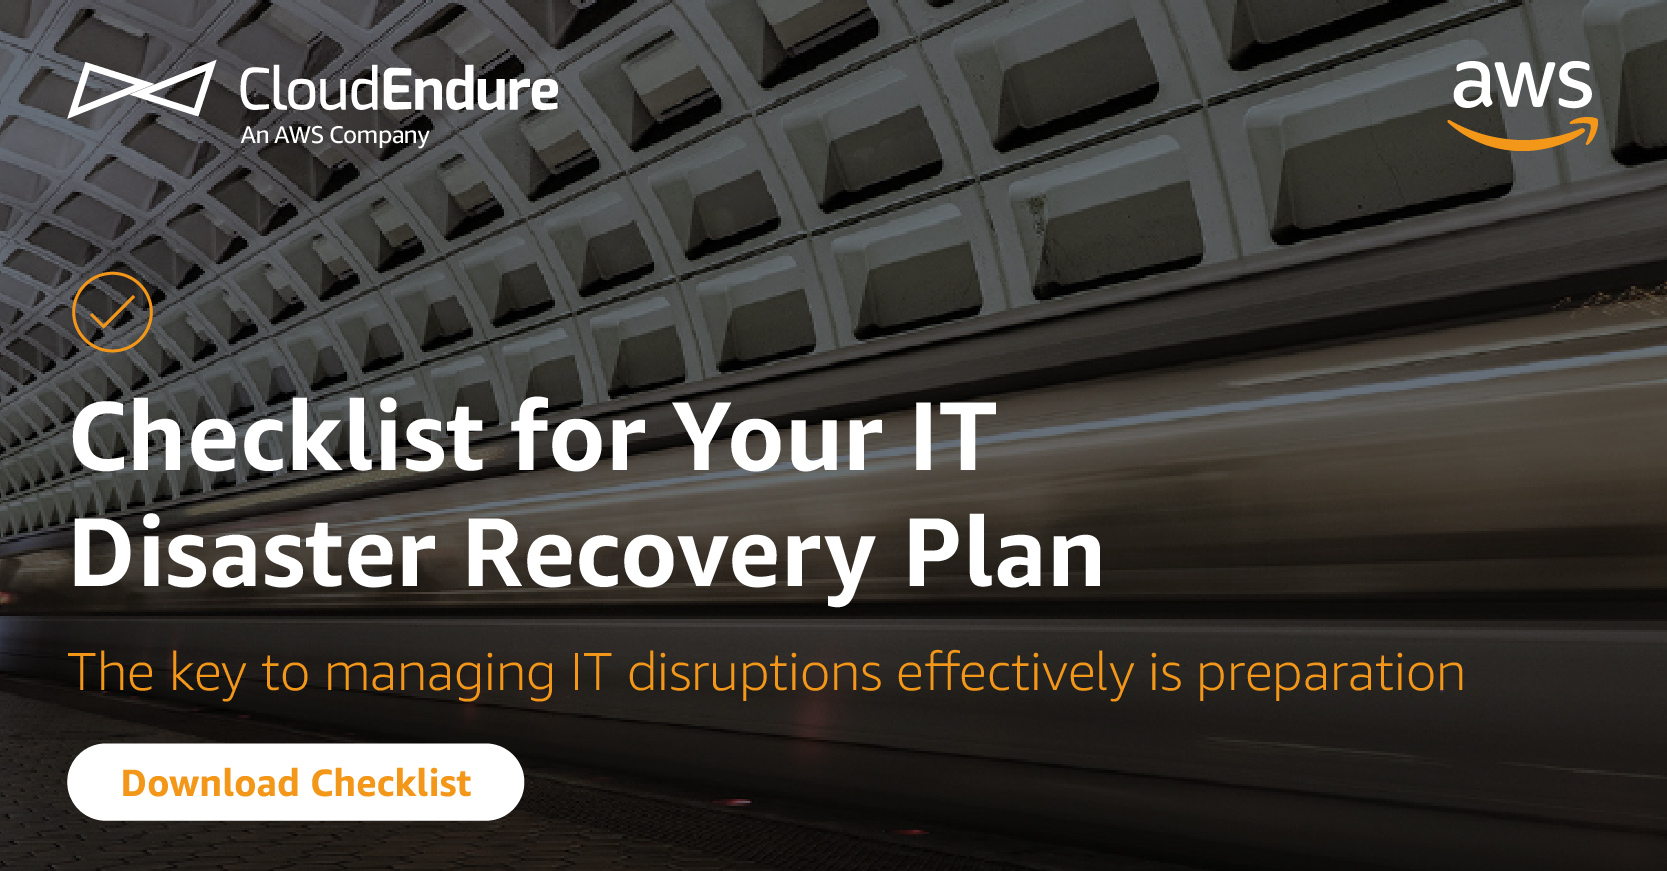 CloudEndure-DisasterRecovery-2021